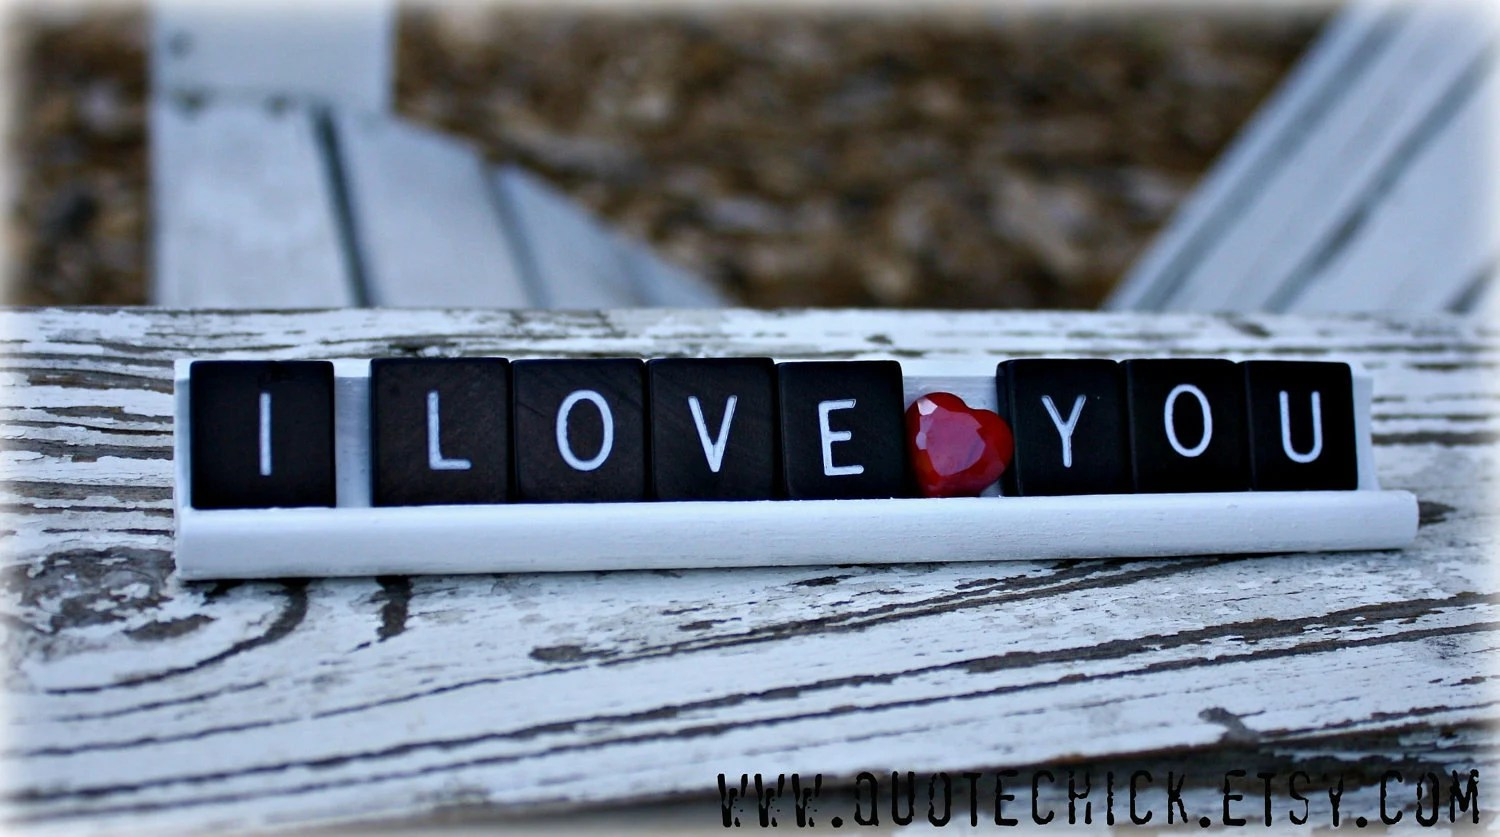 Scrabble Tile Rack Sign - I Love You